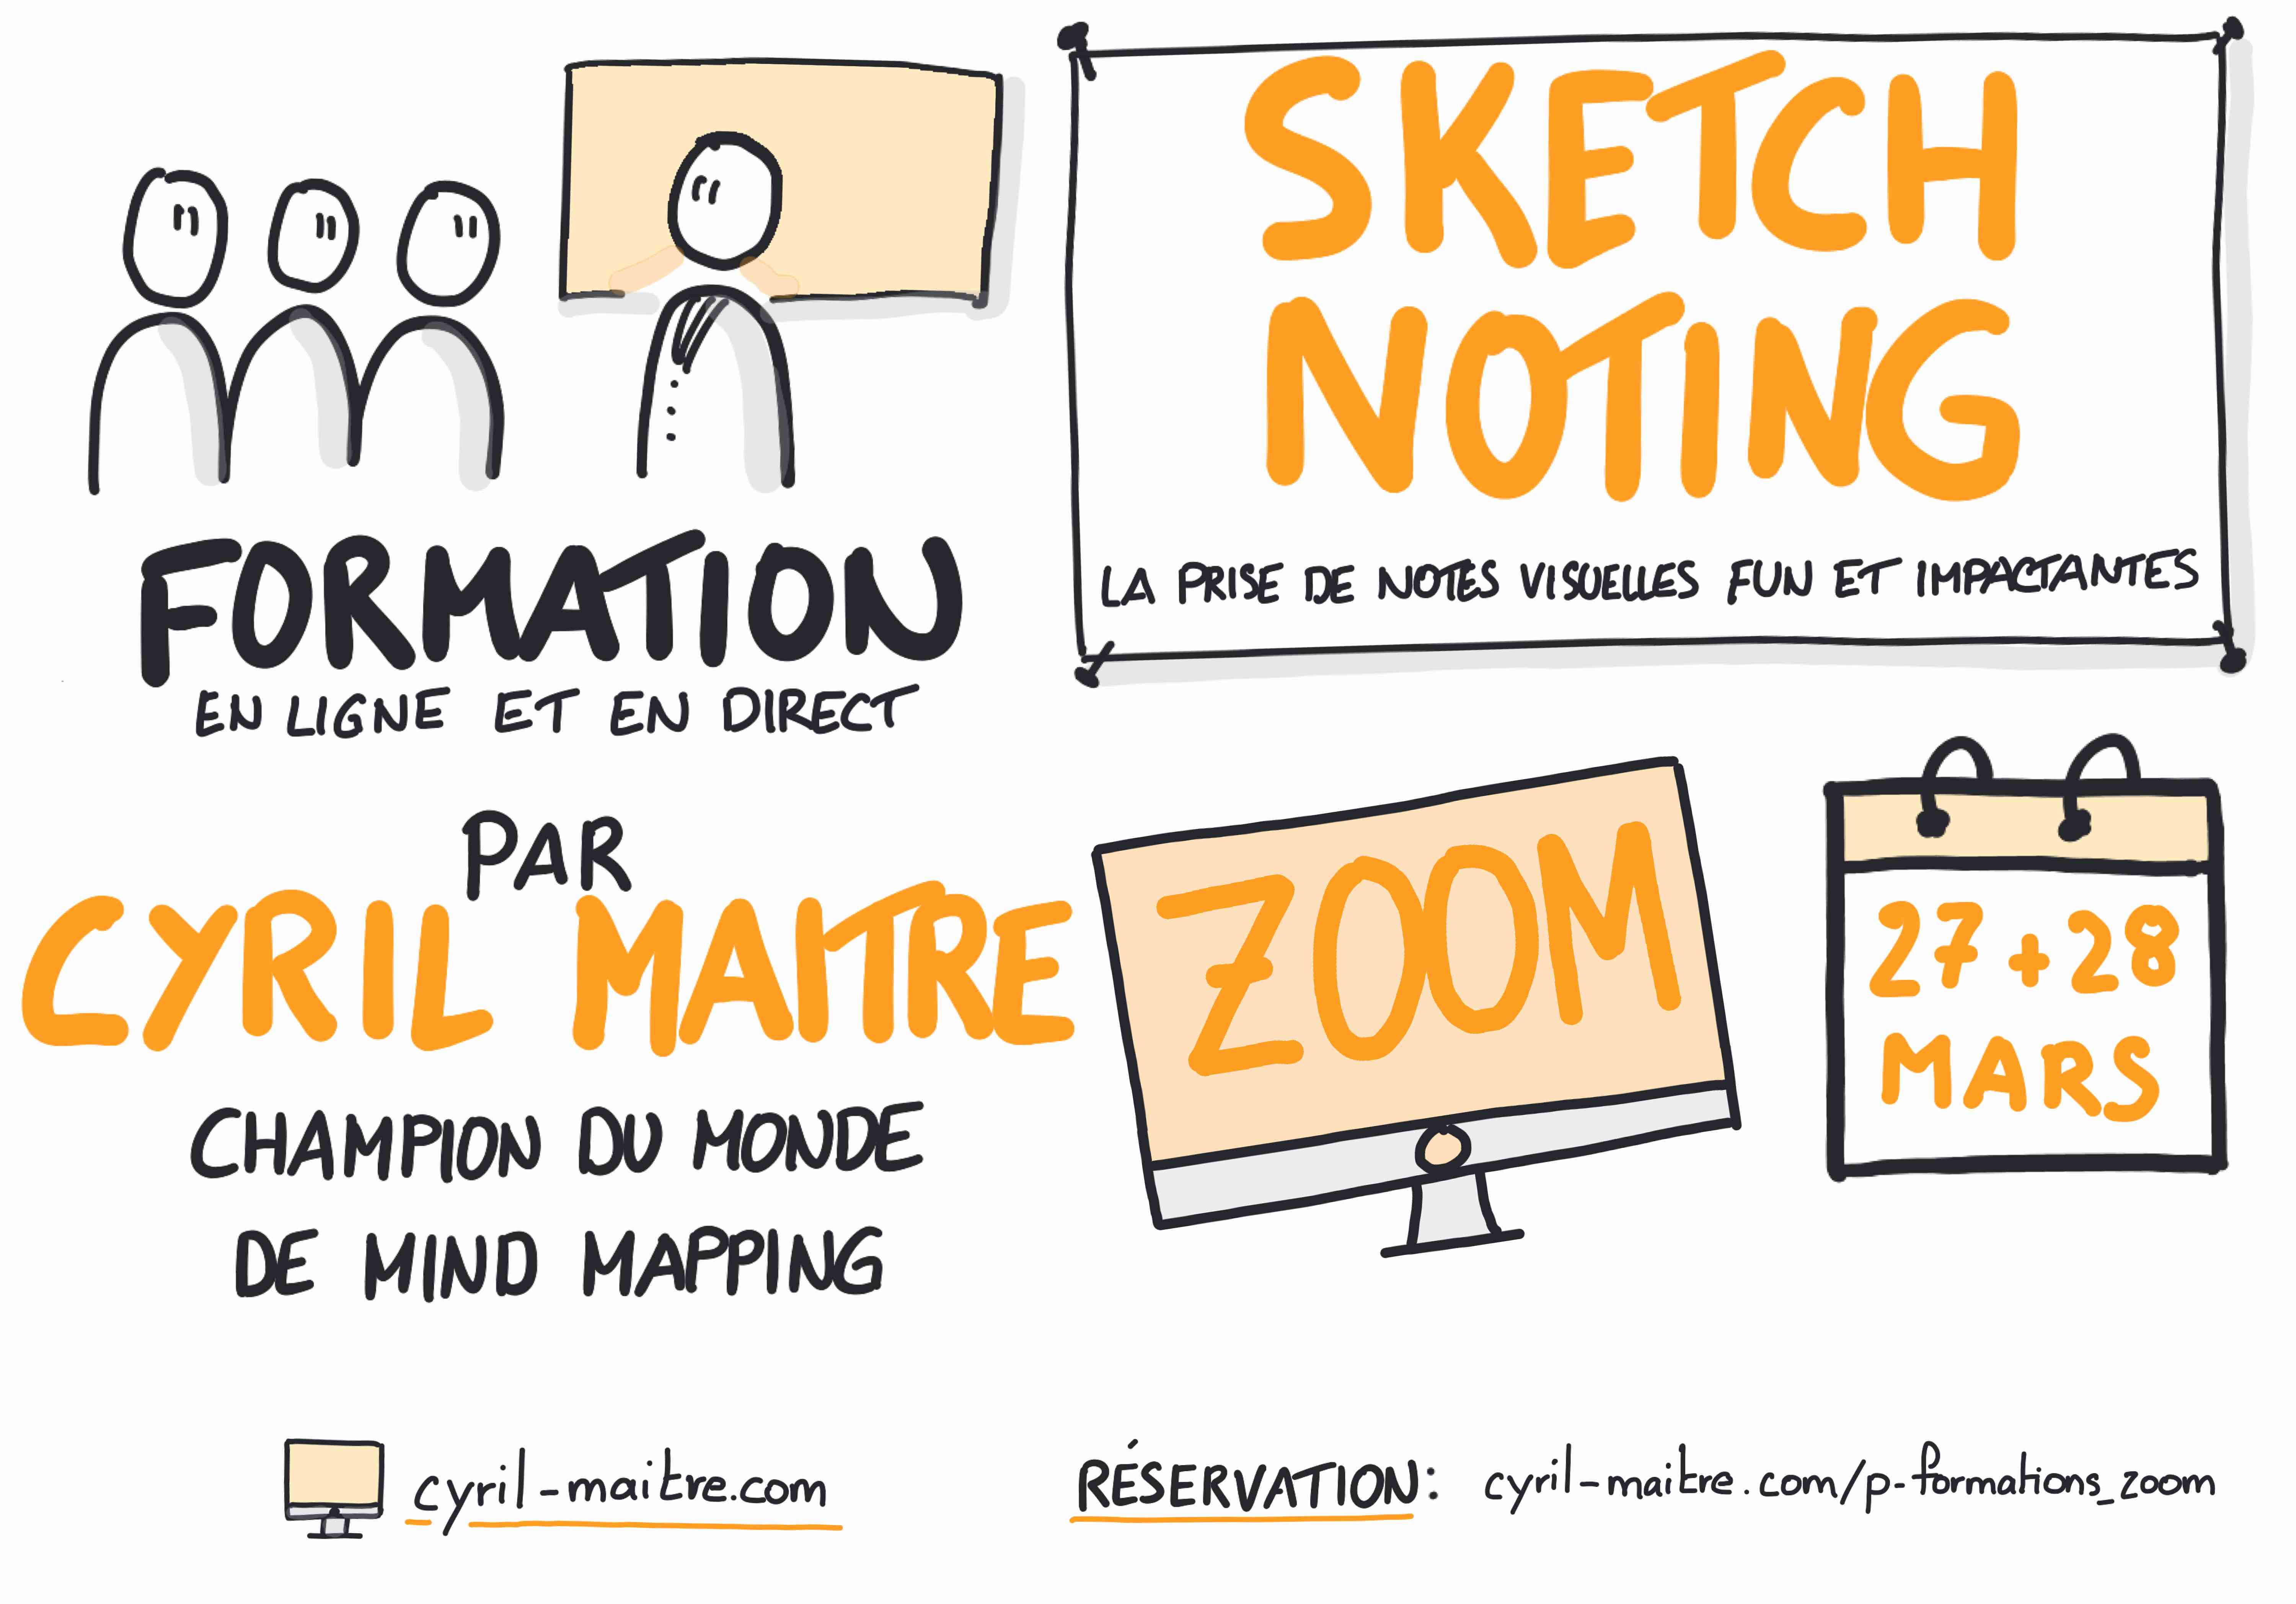 formation sketchnoting cyril maitre mars 2021